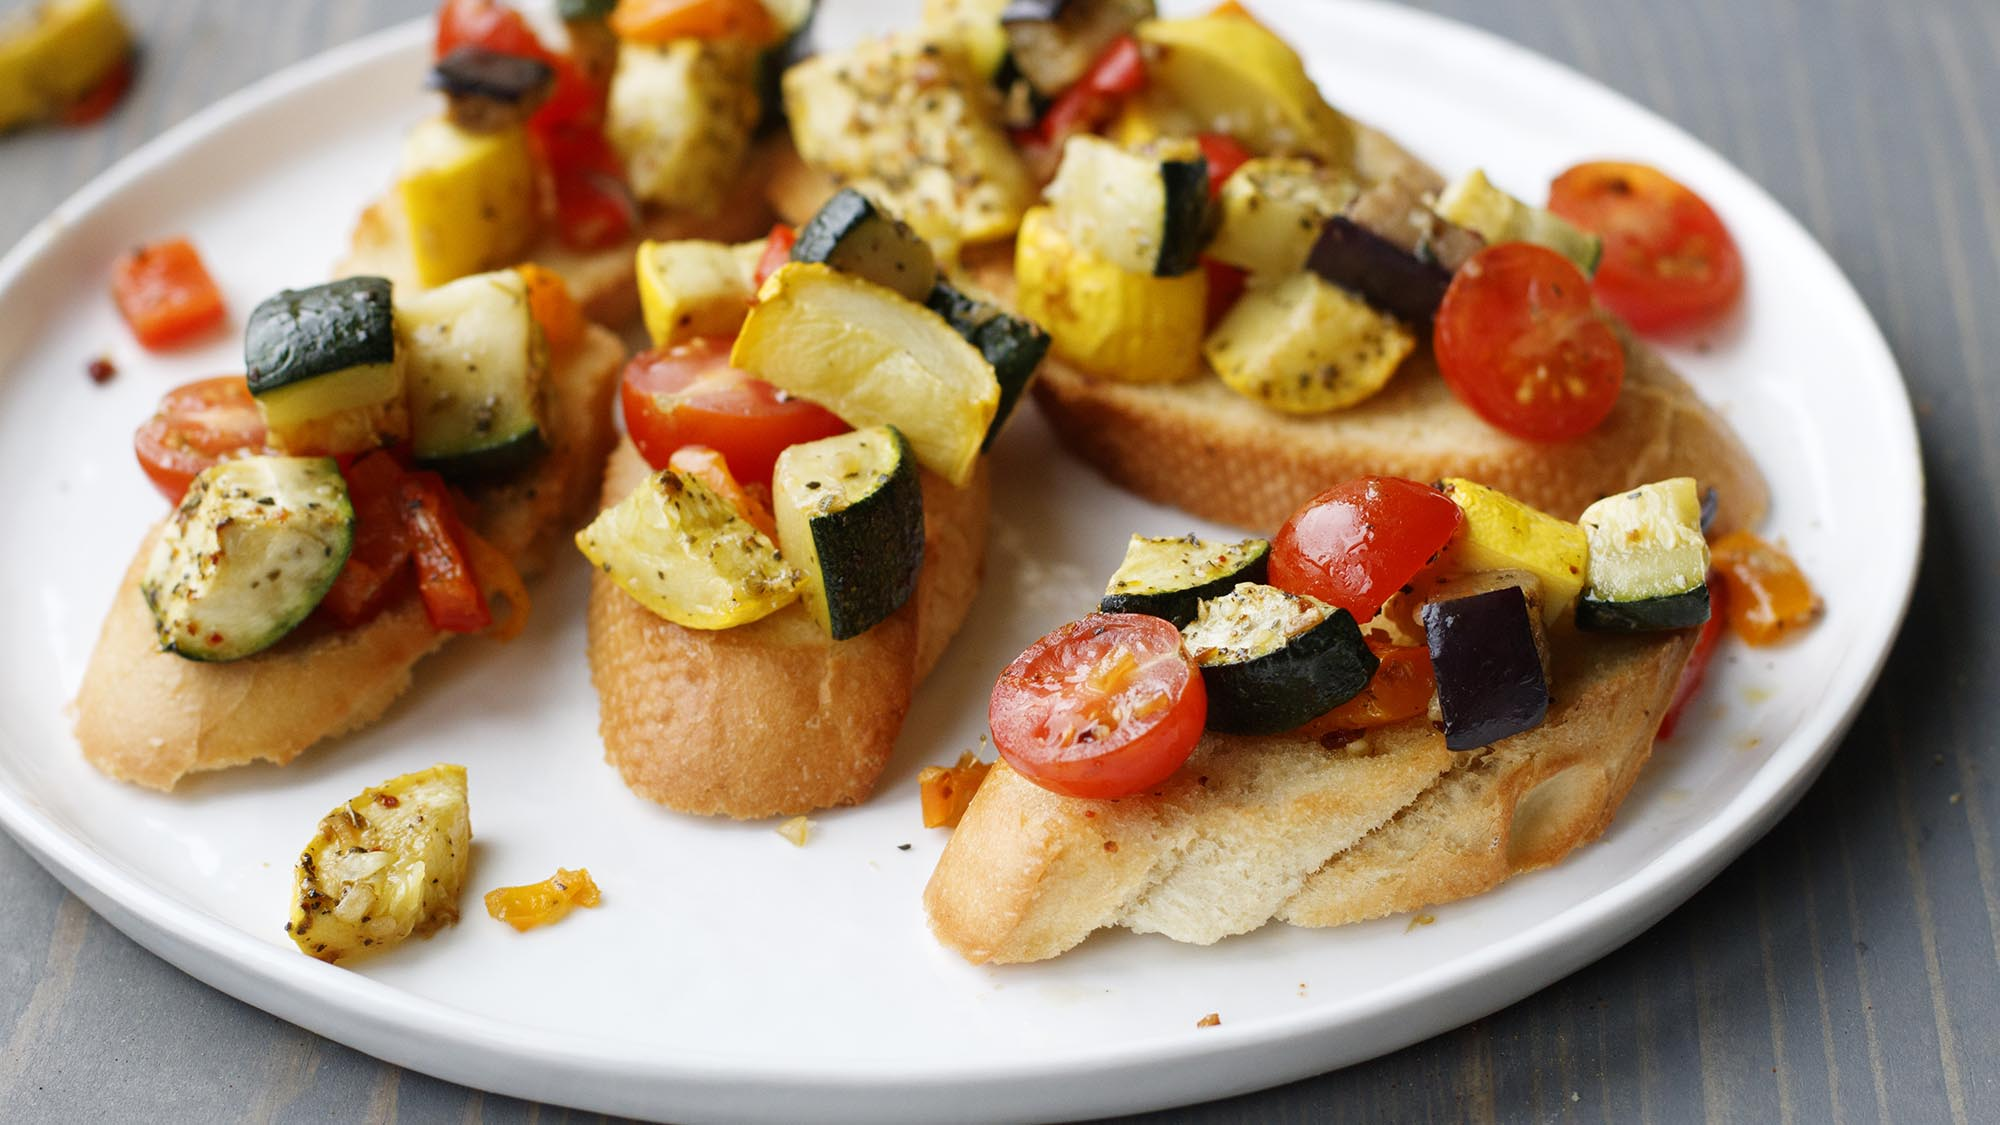 roasted_vegetable_bruschetta_2000x1125.jpg